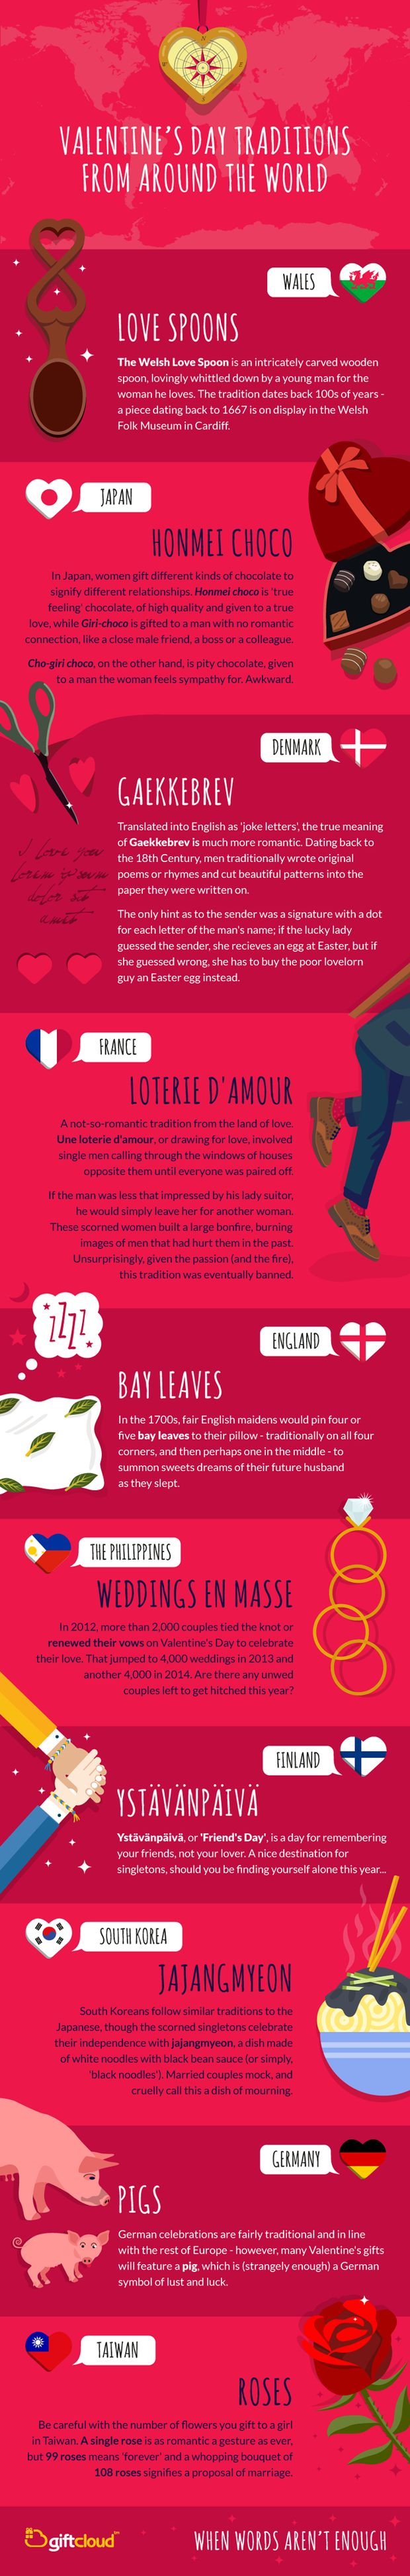 Offbeat Valentine's Day Traditions From Around the World | Mental Floss